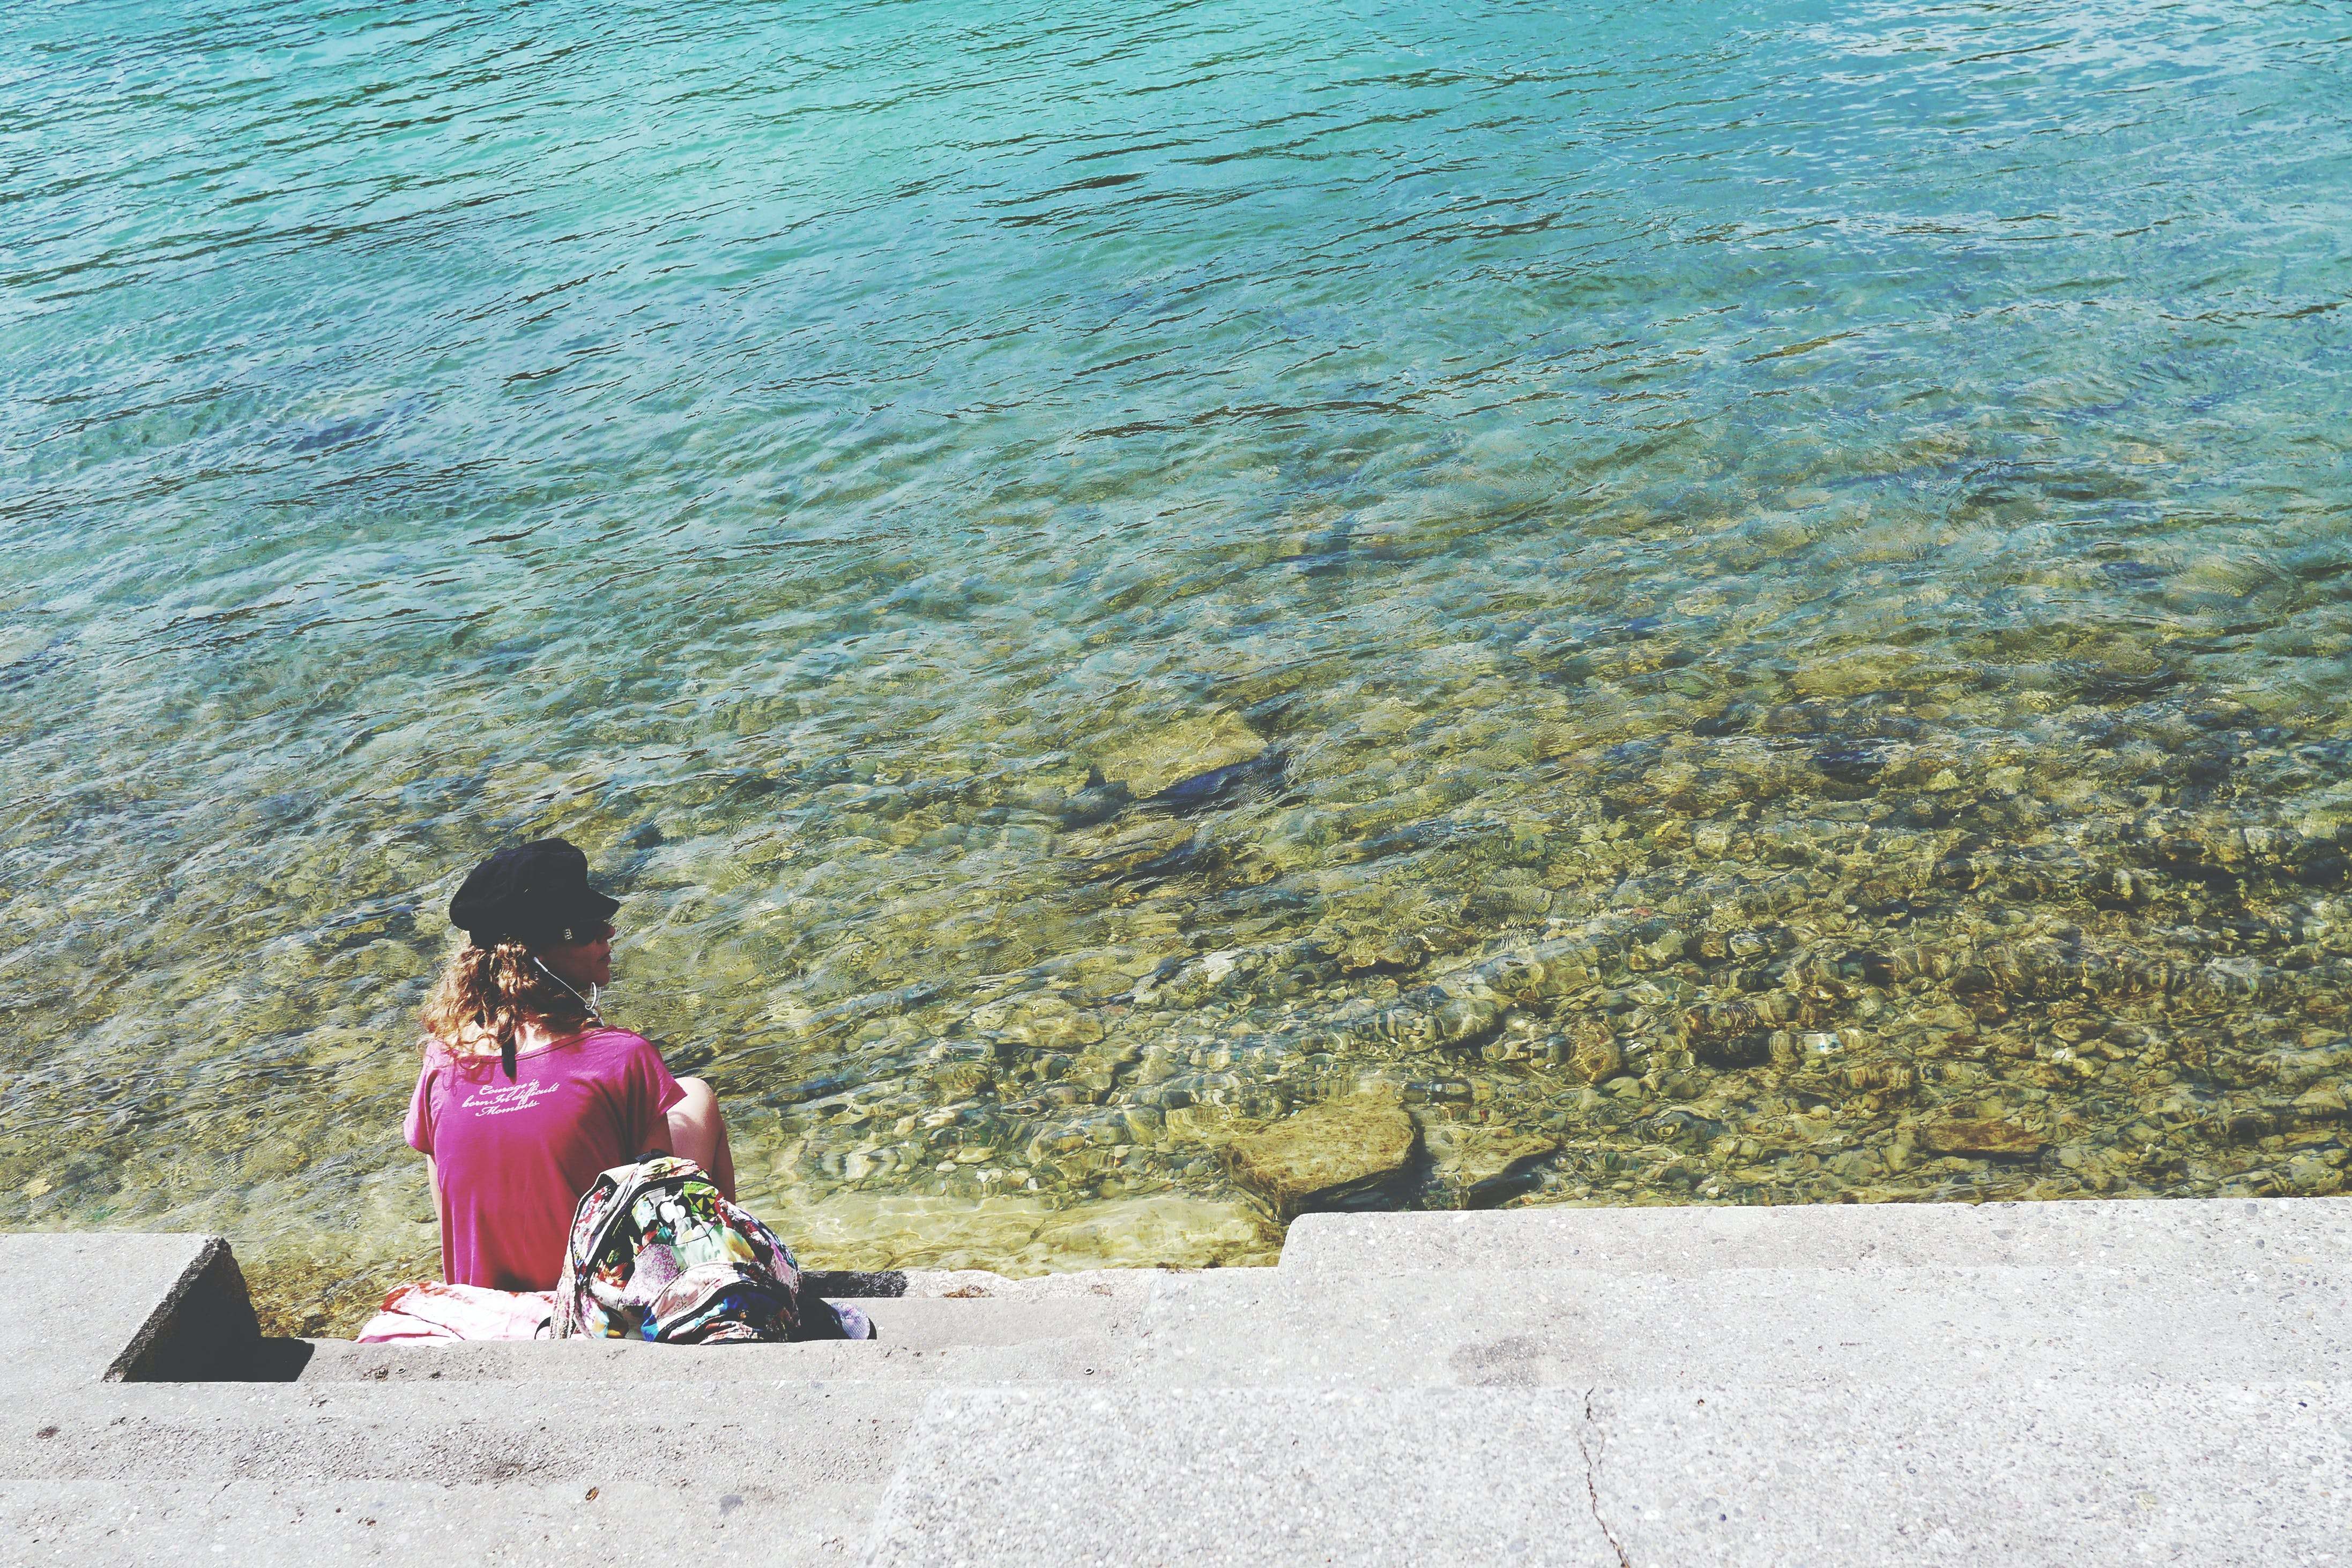 Woman Sitting in Front of Sea during Daytime